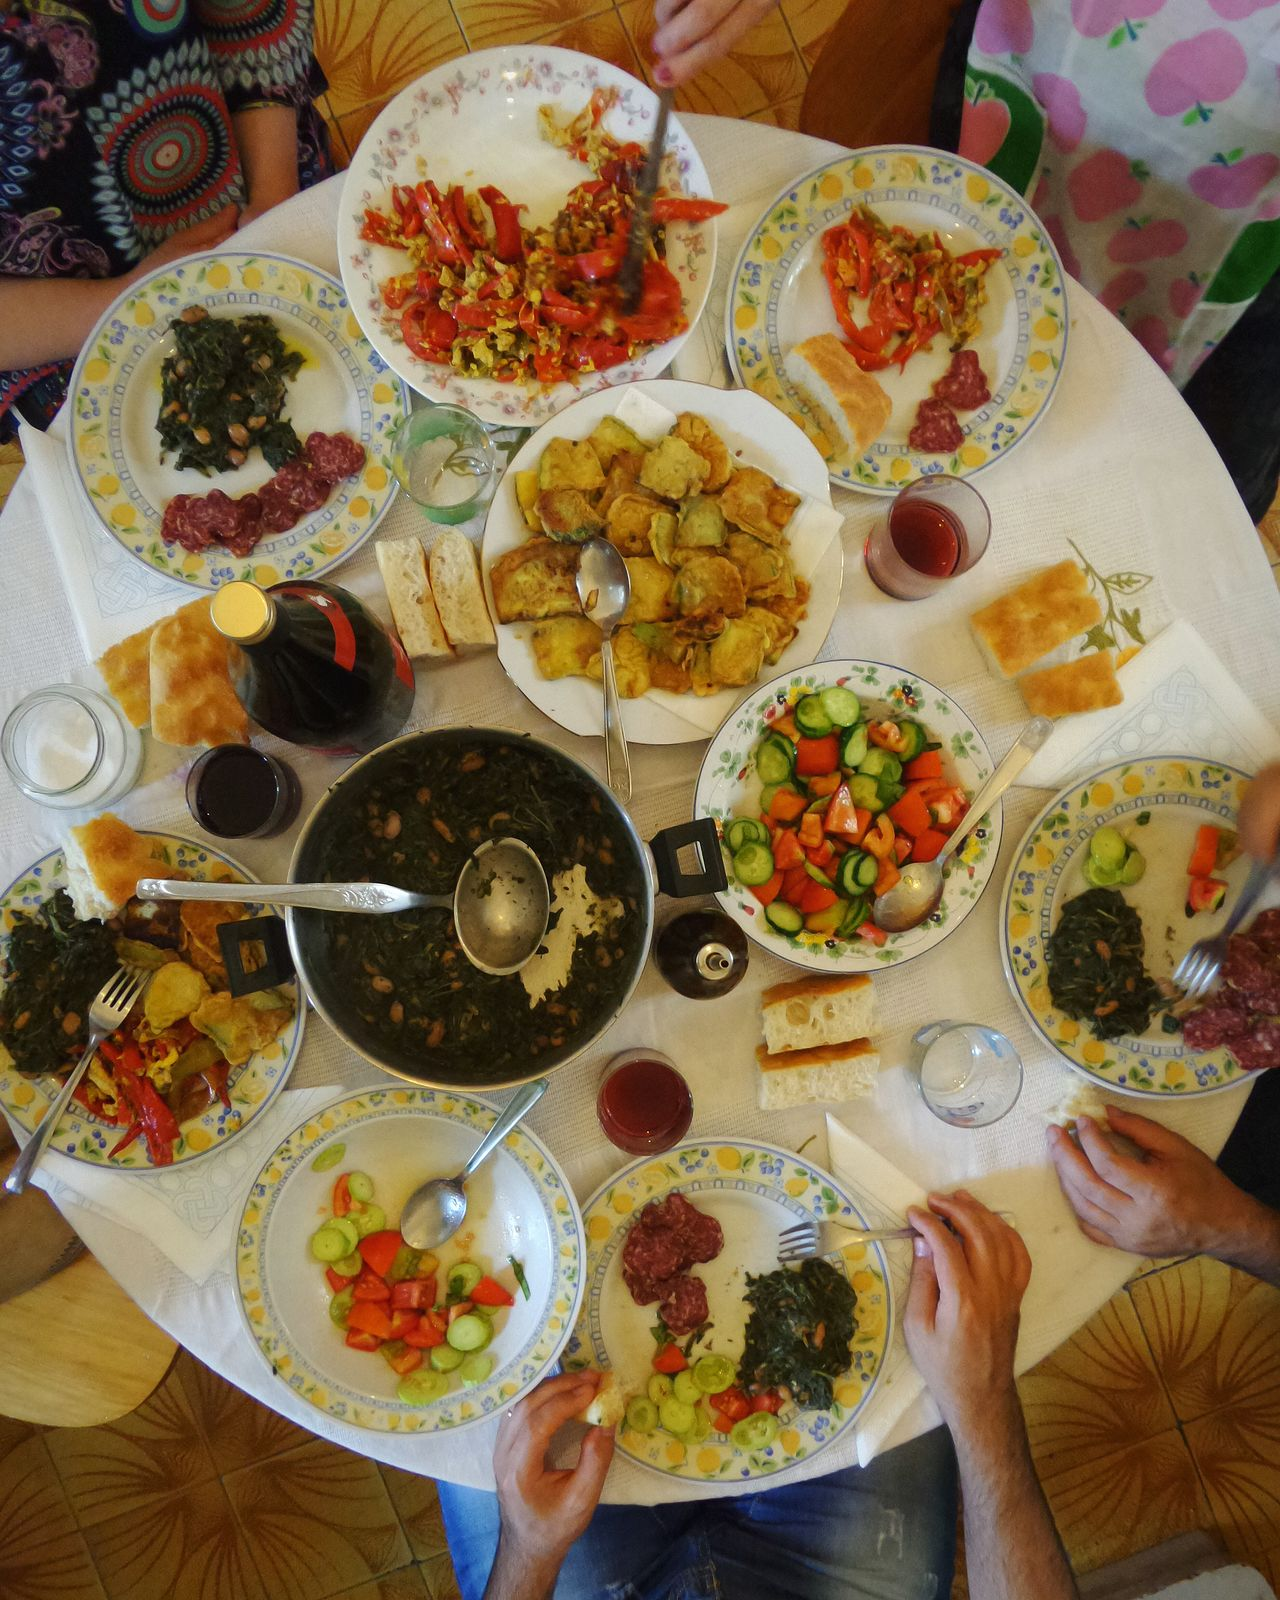 People Together Eating Together Family Lunch Eating Healthy People Photography People Eating The Week On Eyem Table View Sitting At The Table Rich Colors Cooking Colorfully Vegetables Italy Italian Lifestyle Family Portrait Showcase July A Bird's Eye View ShareTheMeal